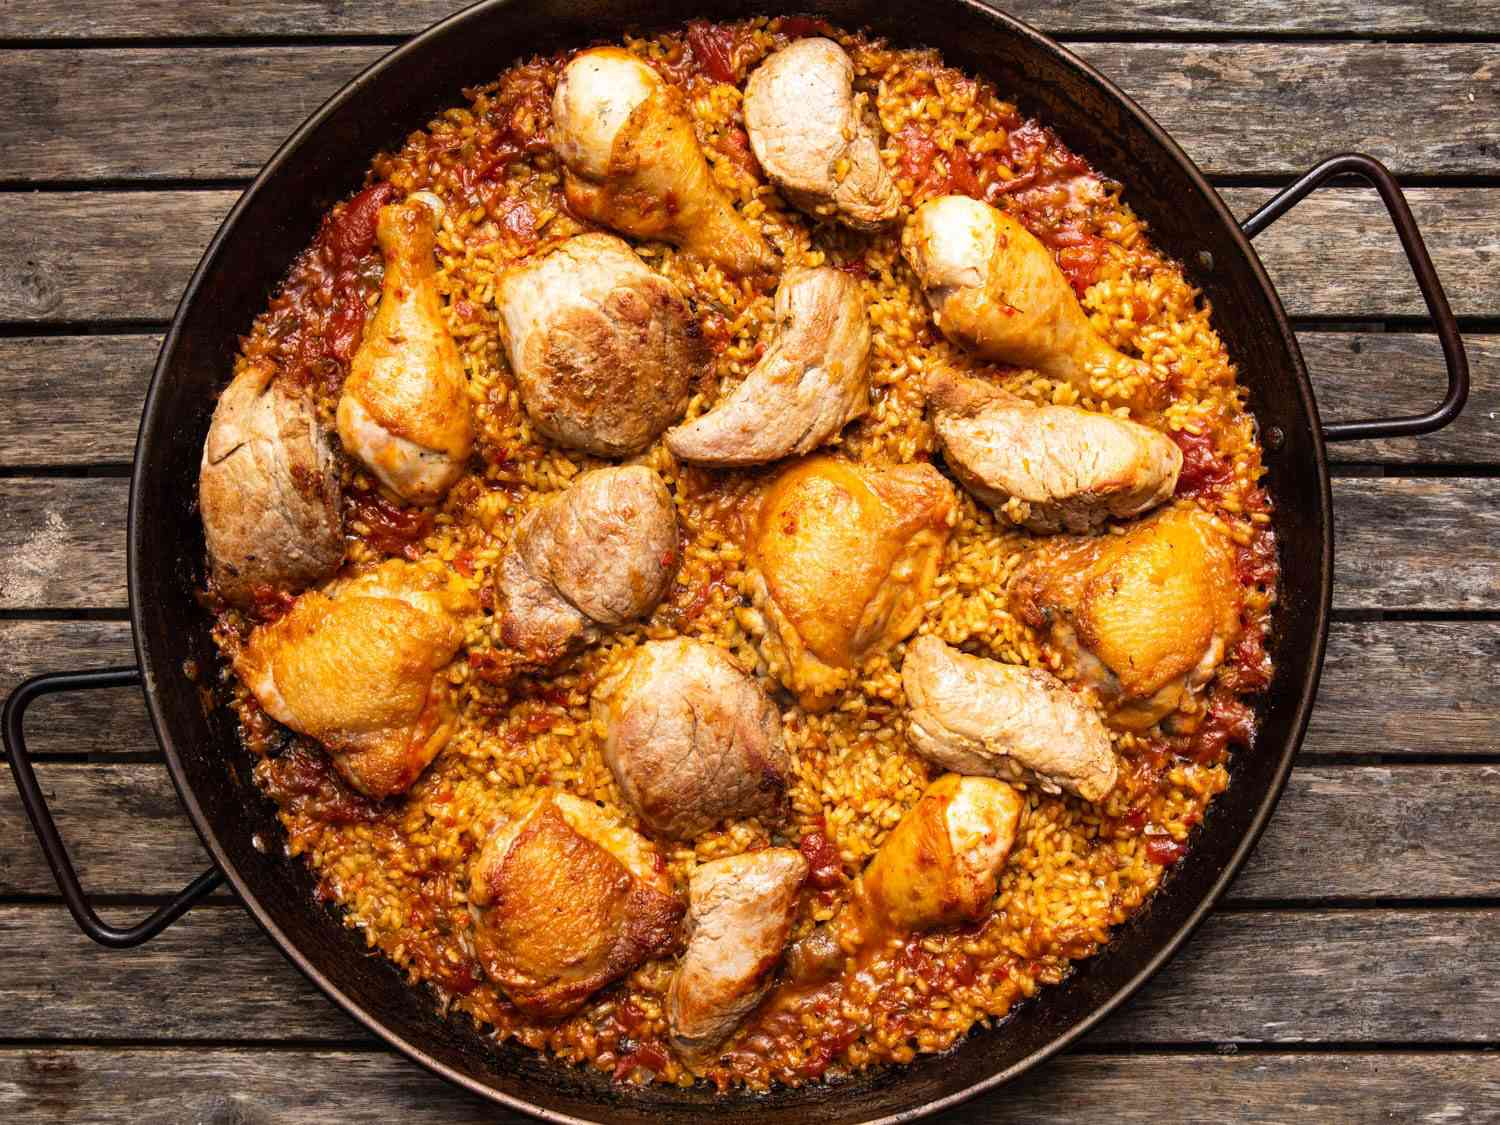 An all-meat (chicken and pork) paella shot from above.